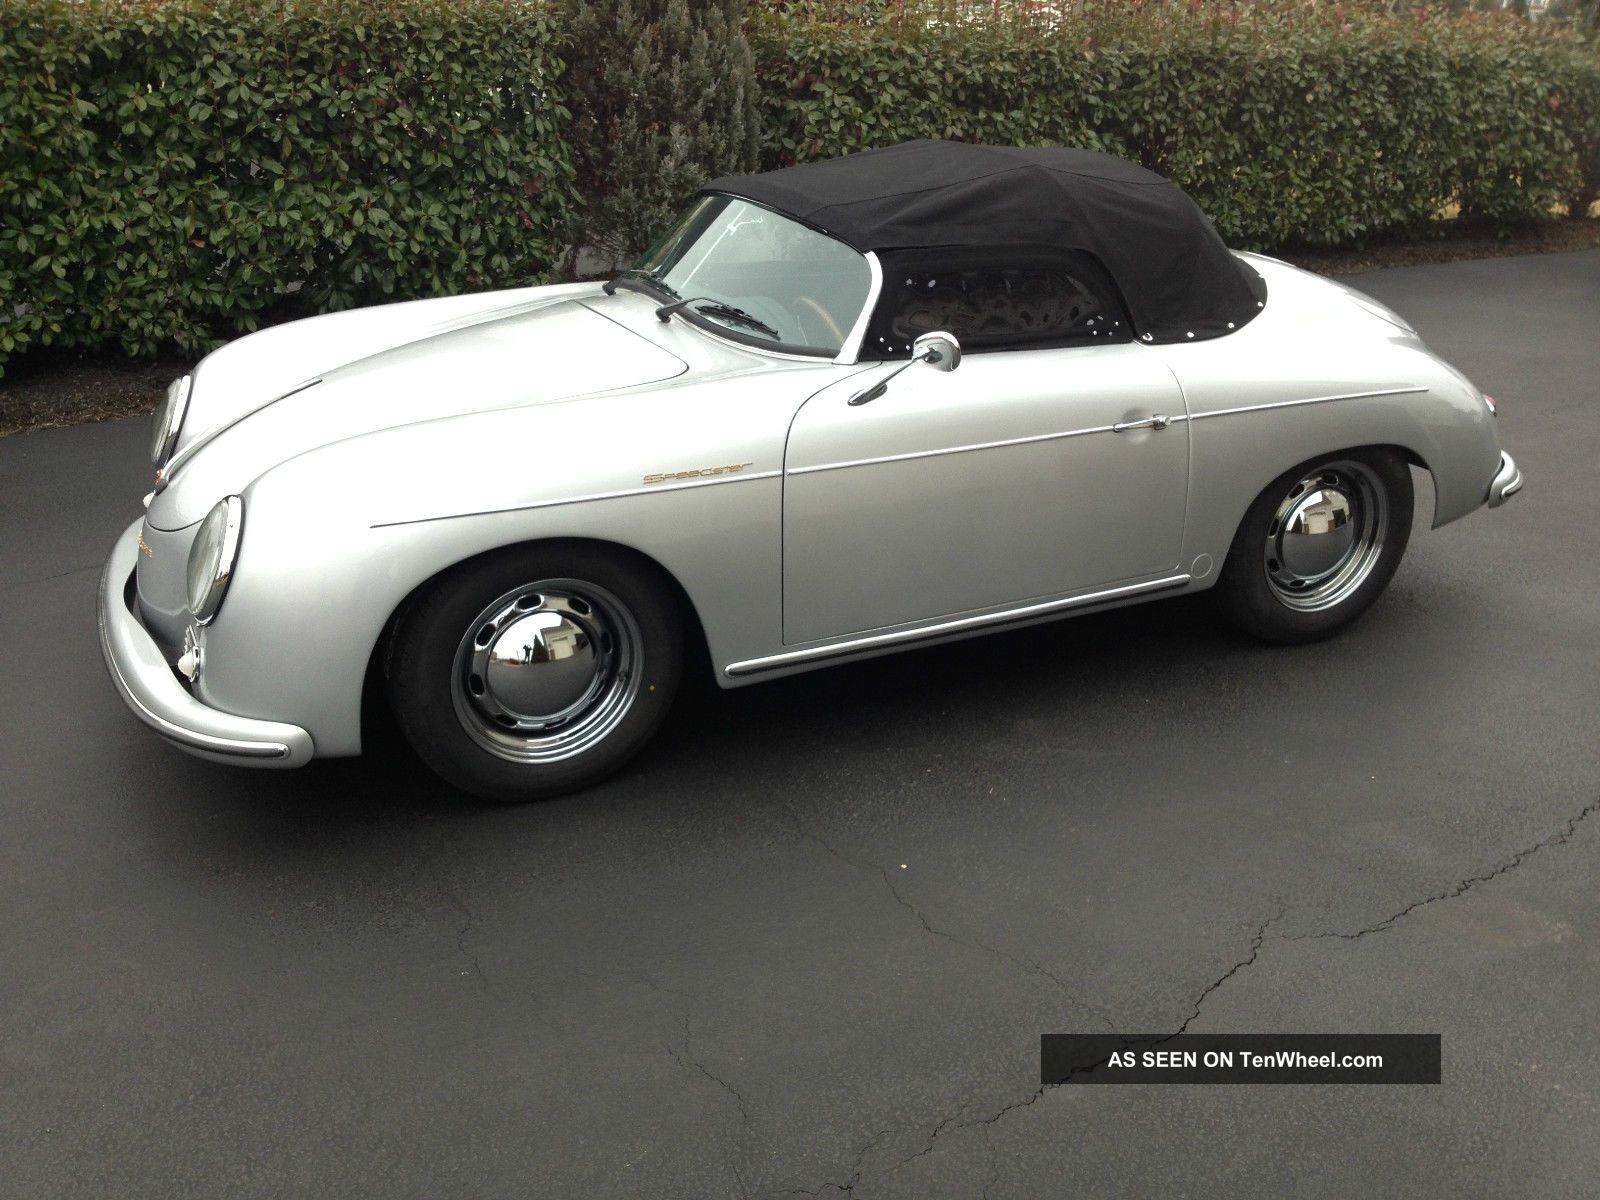 porsche 356 ignition wiring diagram with 86 Svo Mustang Wiring Diagram on 141267 Sc Won T Start S Electrical furthermore 1435h Need Beginers Wiring Diagram Softail Anyone together with 1971 Vw Type 3 Wiring Diagram further Vw Beetle 1600cc Engine Diagram besides Saab 900 Ignition Wiring Diagram.